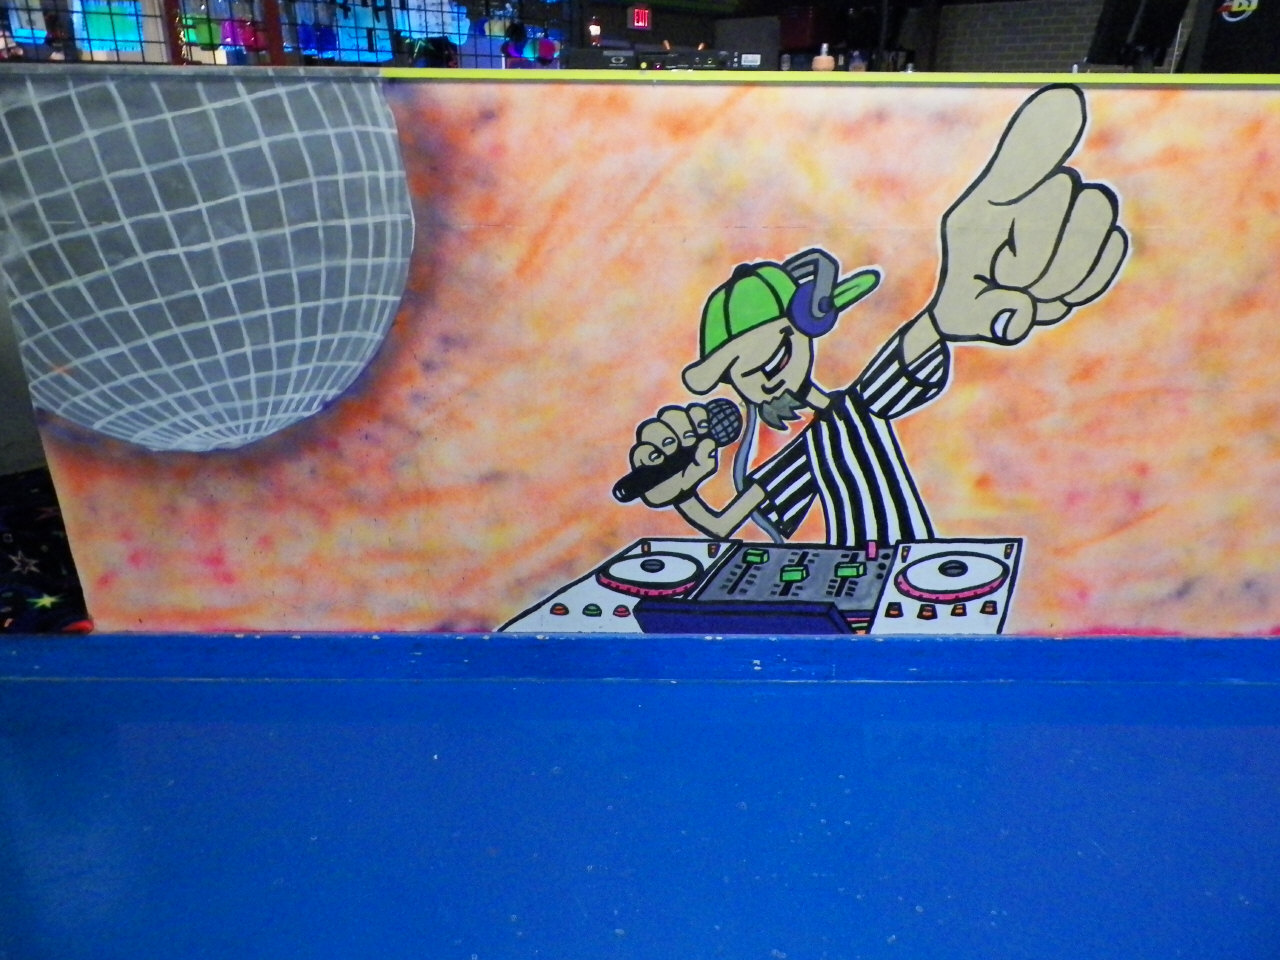 DJ booth artwork at turn 1